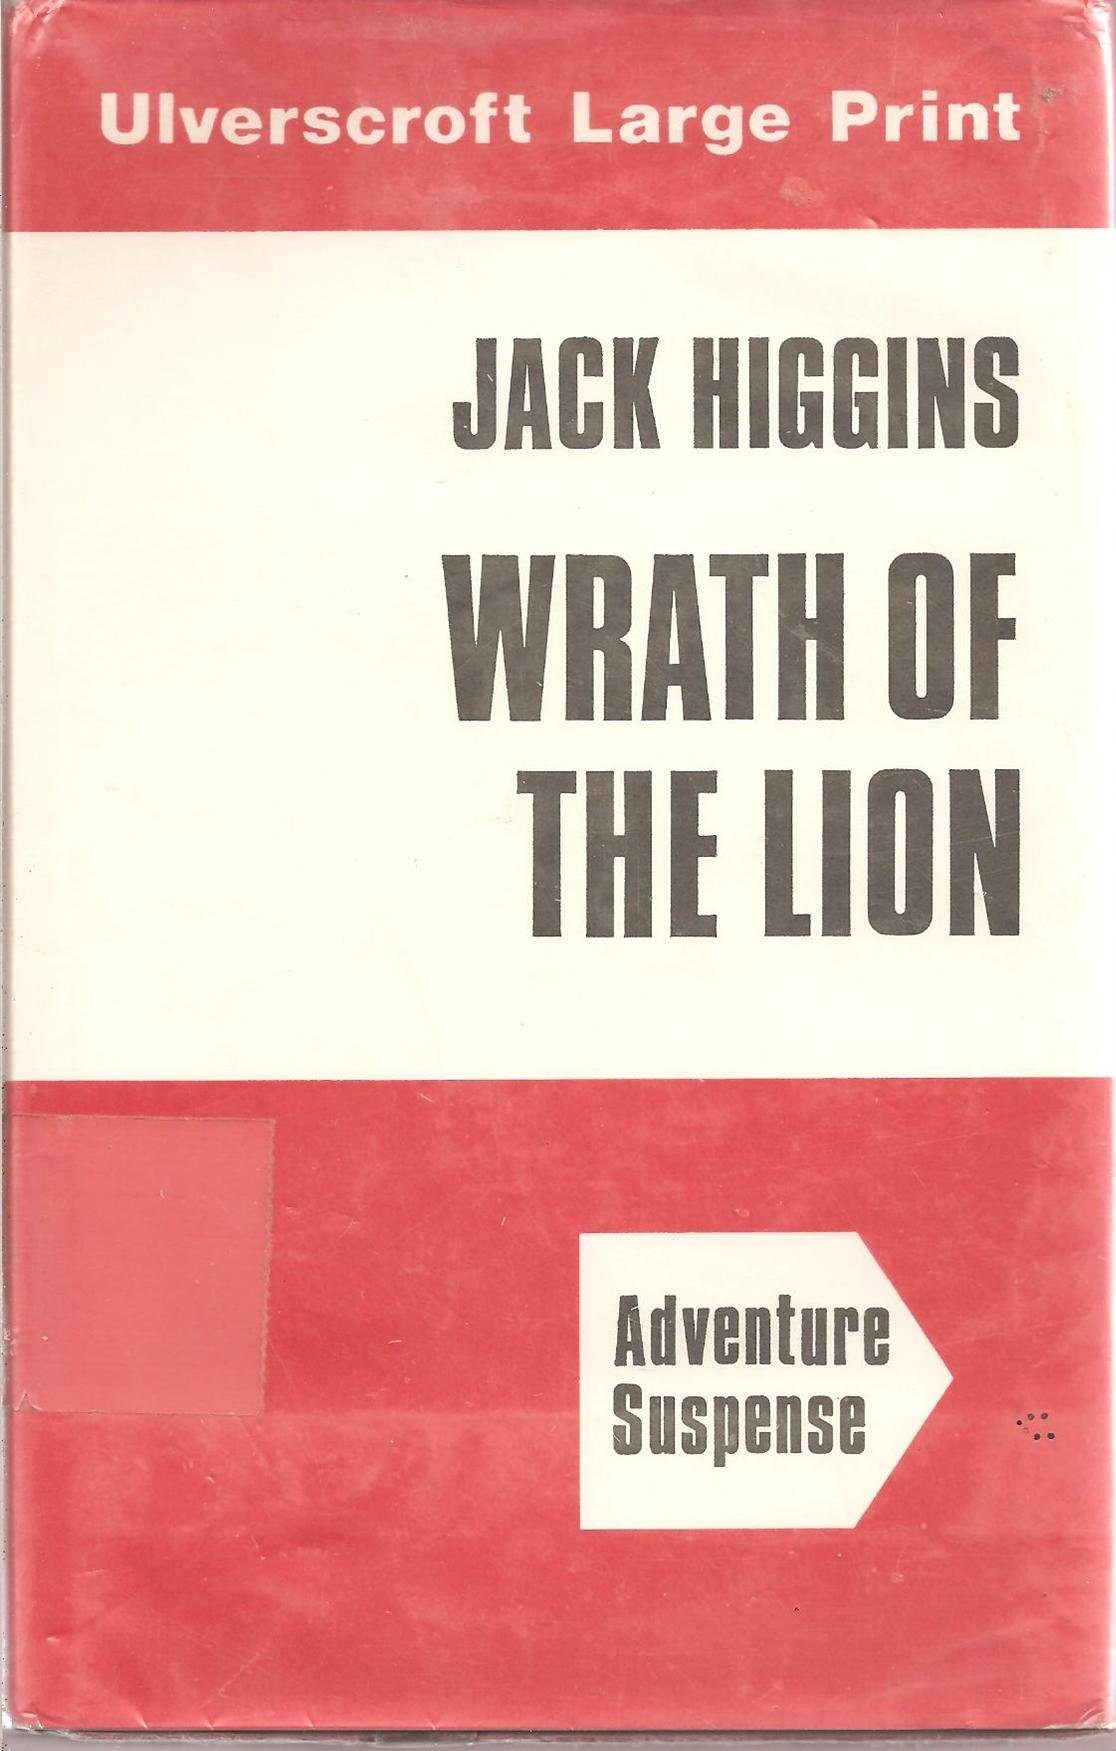 Book cover of Wrath of the Lion